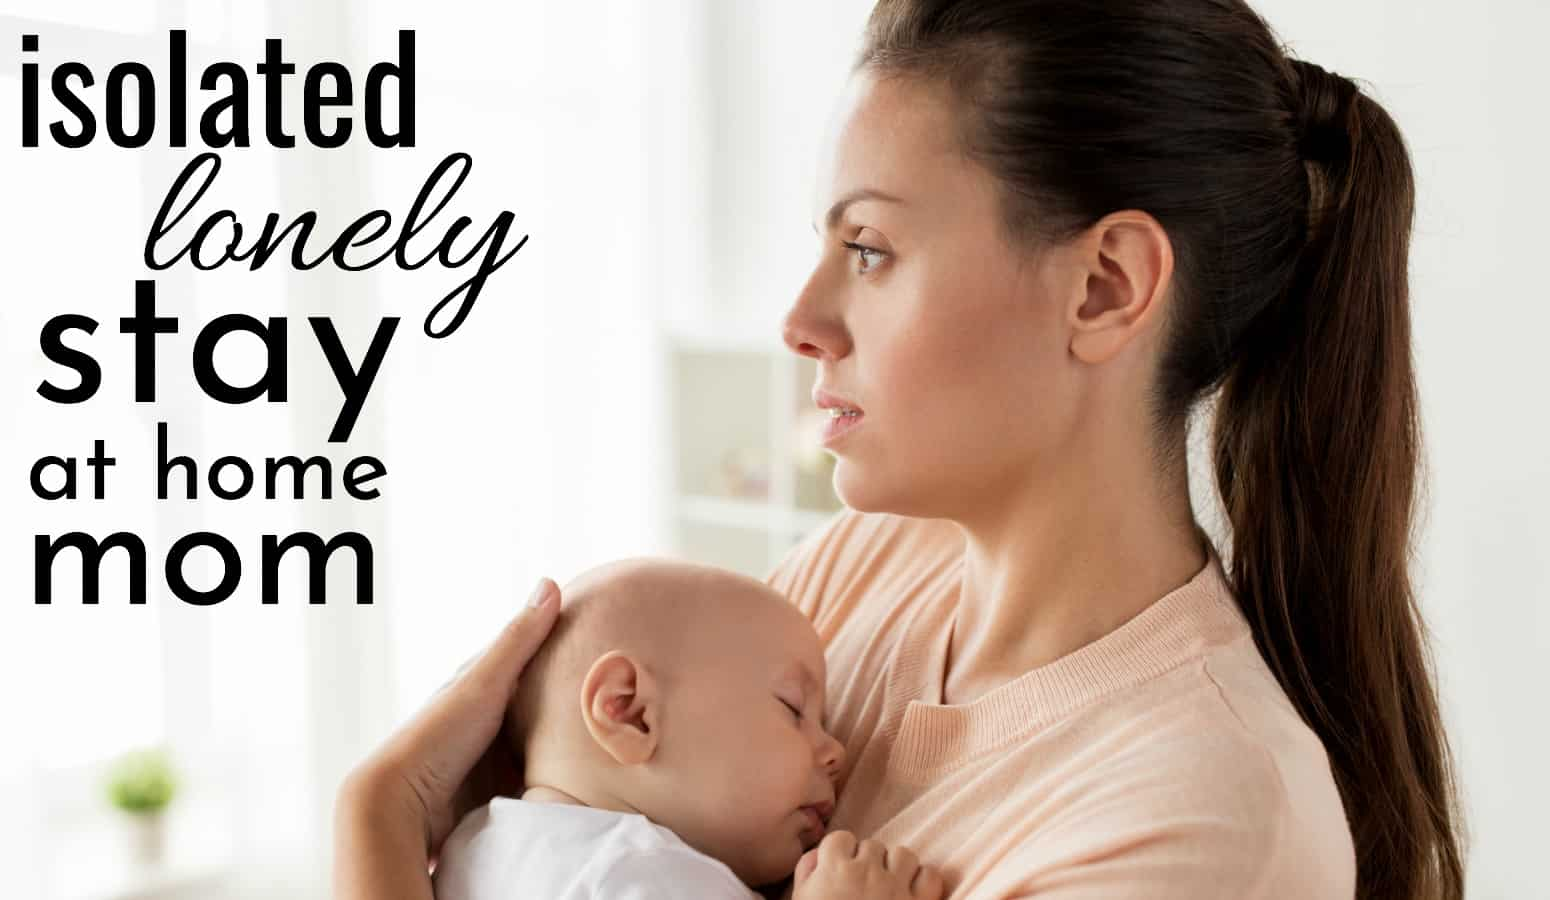 isolated lonely depressed stay at home mom holding baby while staring out the window